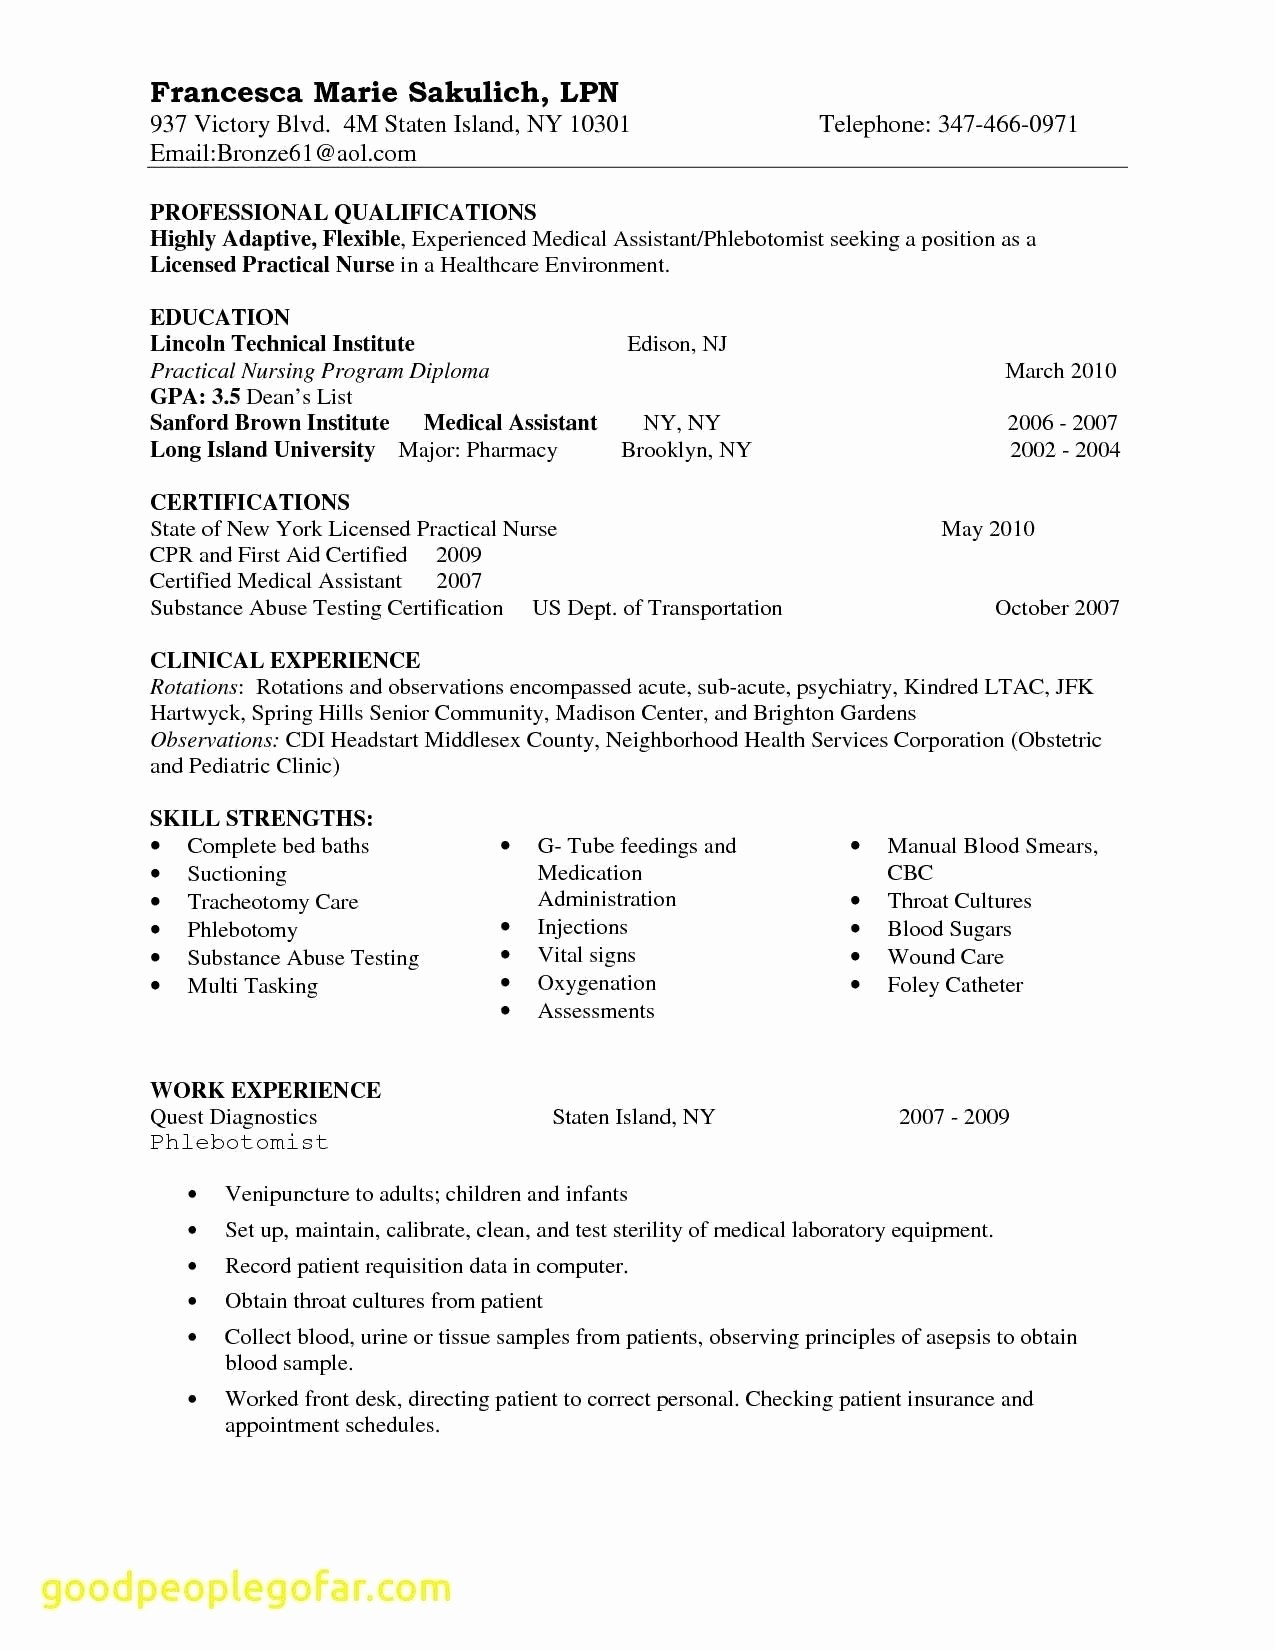 Medical School Application Resume - Resume for Job Application New Dean Health Madison Wi Lovely Sample